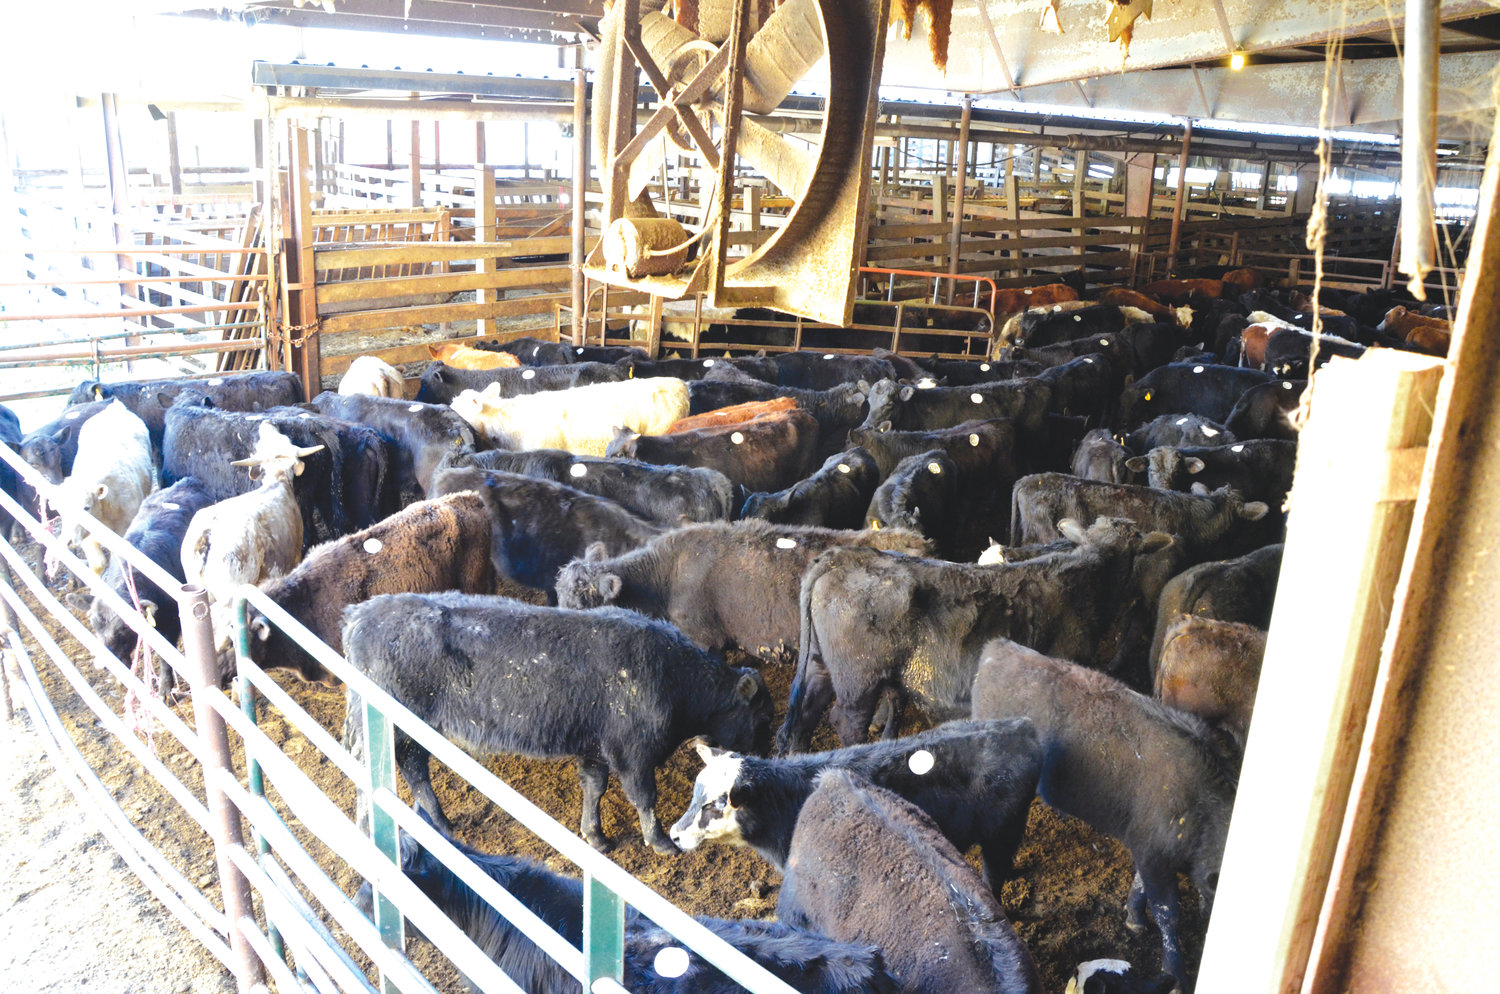 A small herd of cattle wait to go on the auction block Friday at the Carolina Stockyards. More than 1,300 head were sold there that particular day.